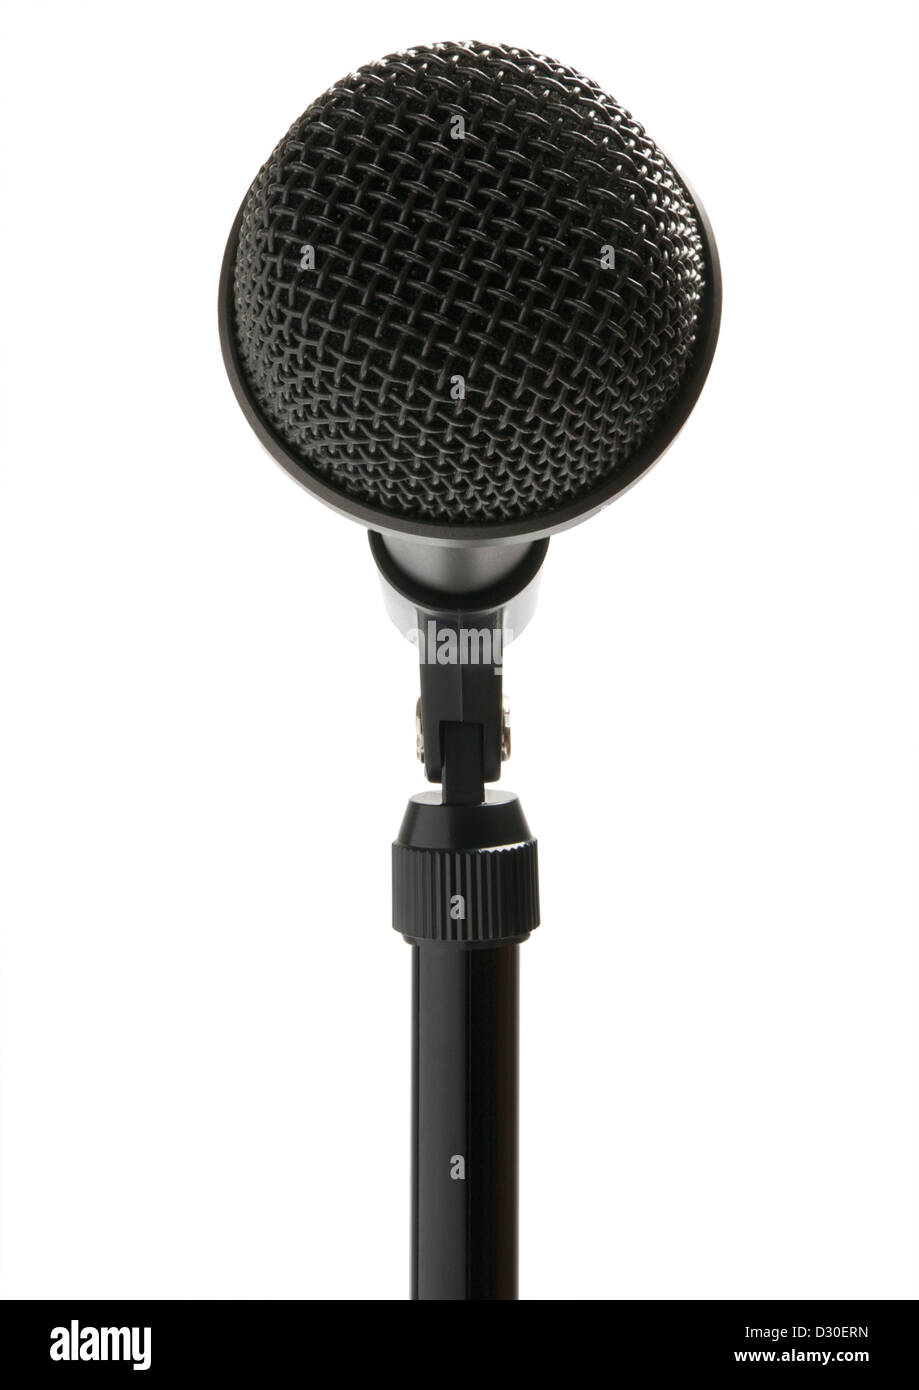 Microphone on stand on white background - Stock Image